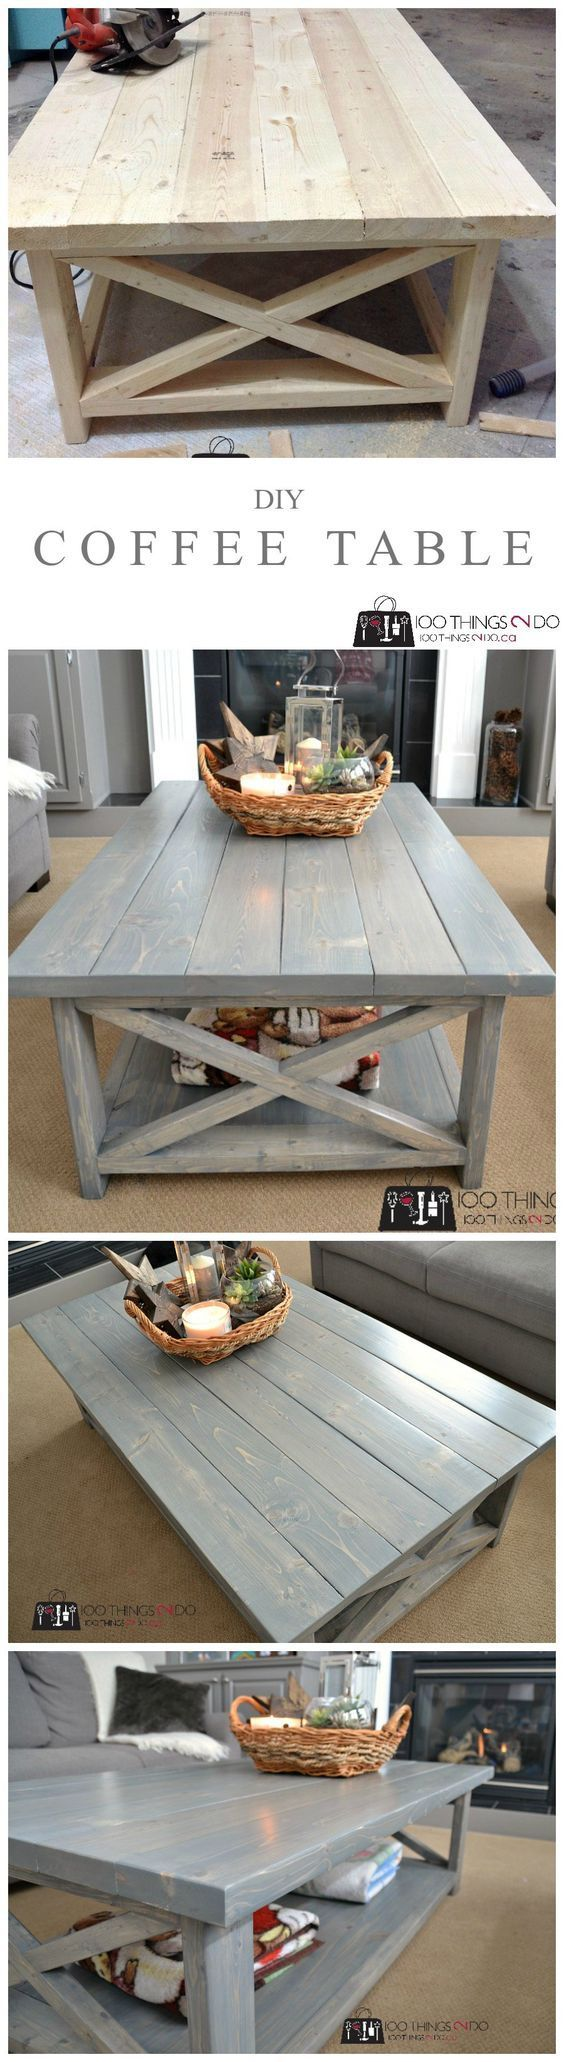 Coffee tables and creative table designs - Diy Coffee Table 15 Easy Diy Reclaimed Wood Projects